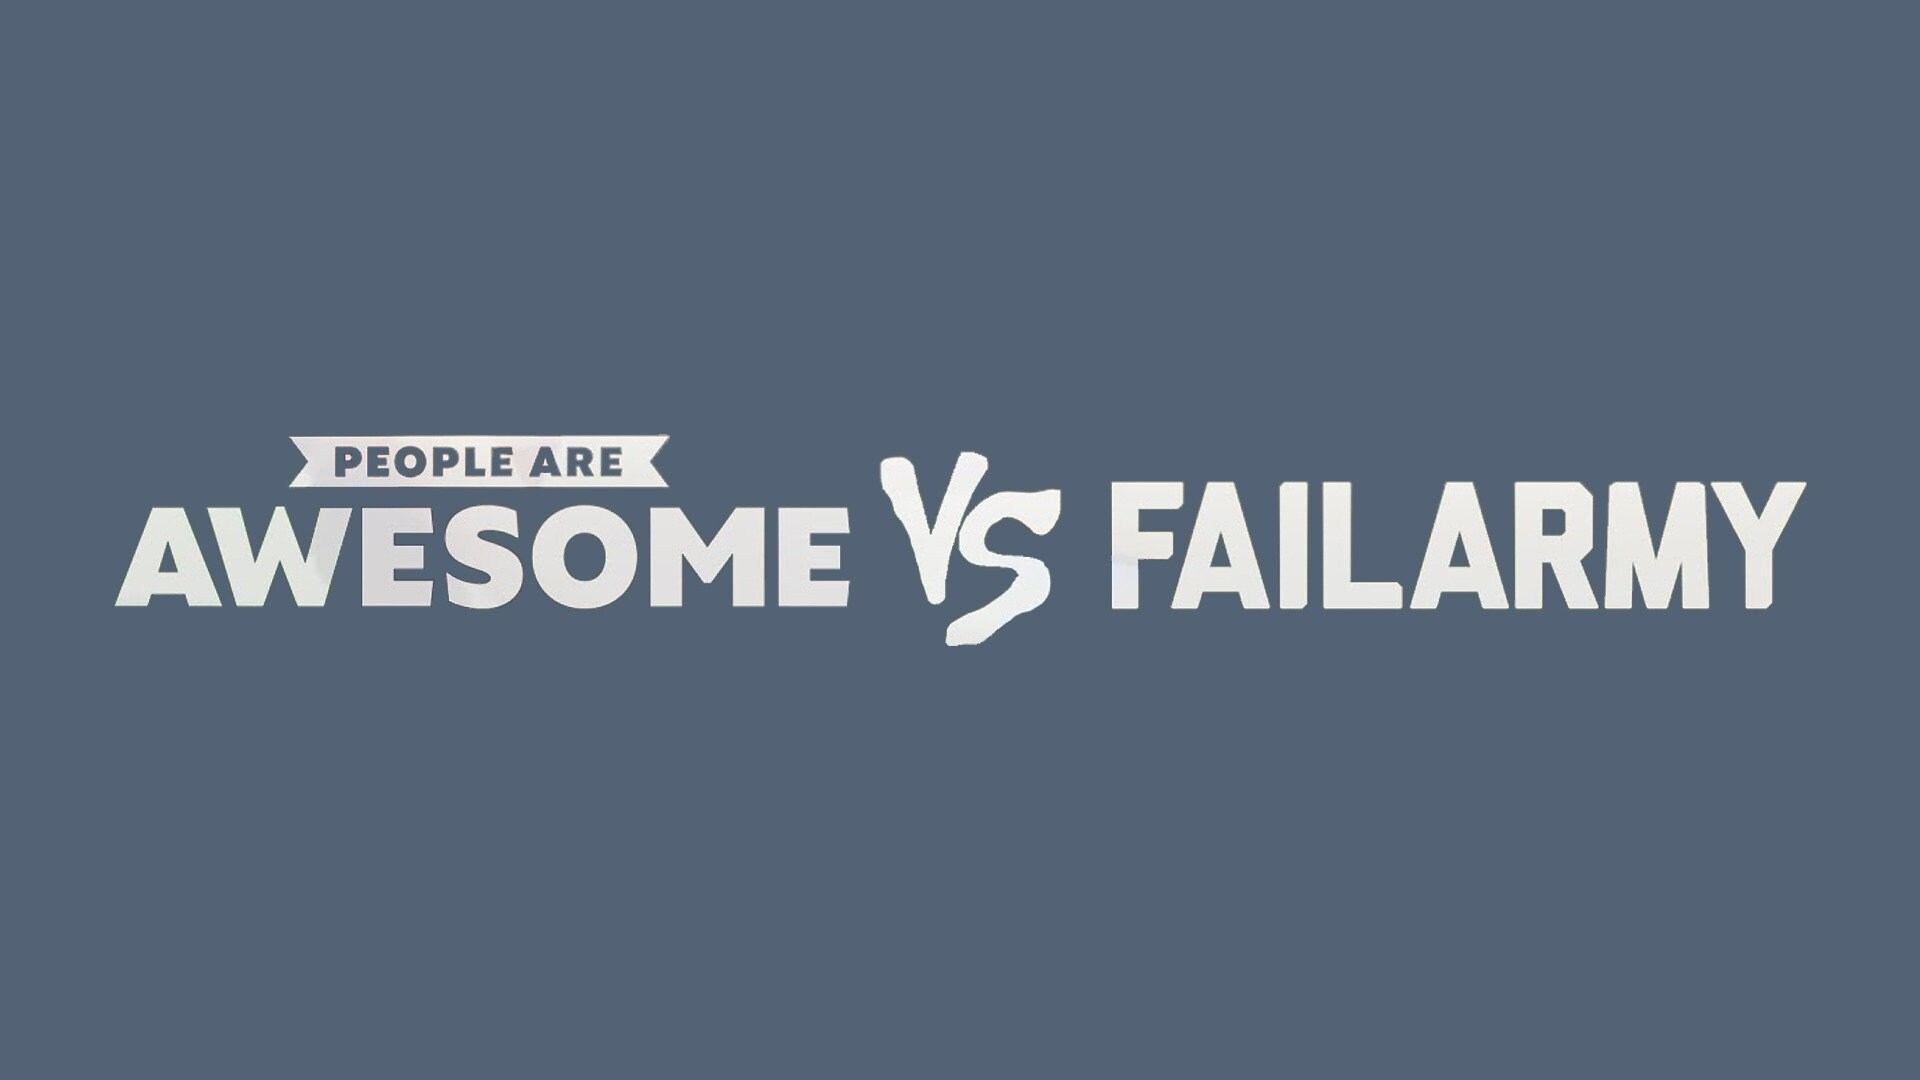 People Are Awesome vs. FailArmy 1